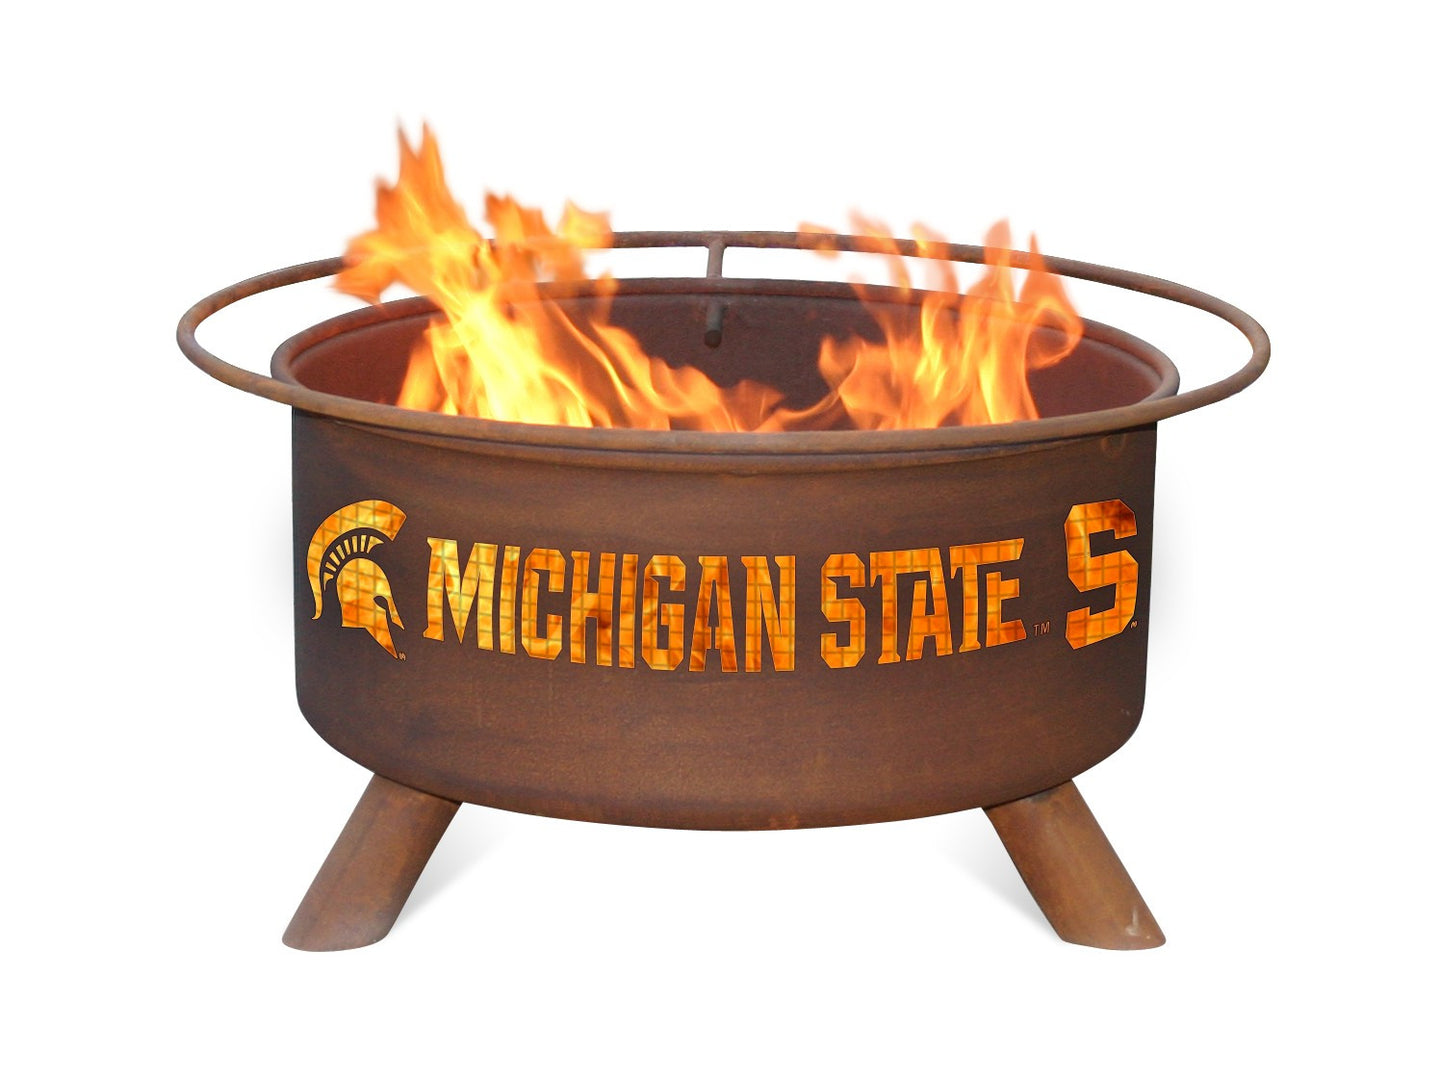 Collegiate Michigan State University Logo Wood / Charcoal Steel Fire Pit, Fireplace - Yardify.com